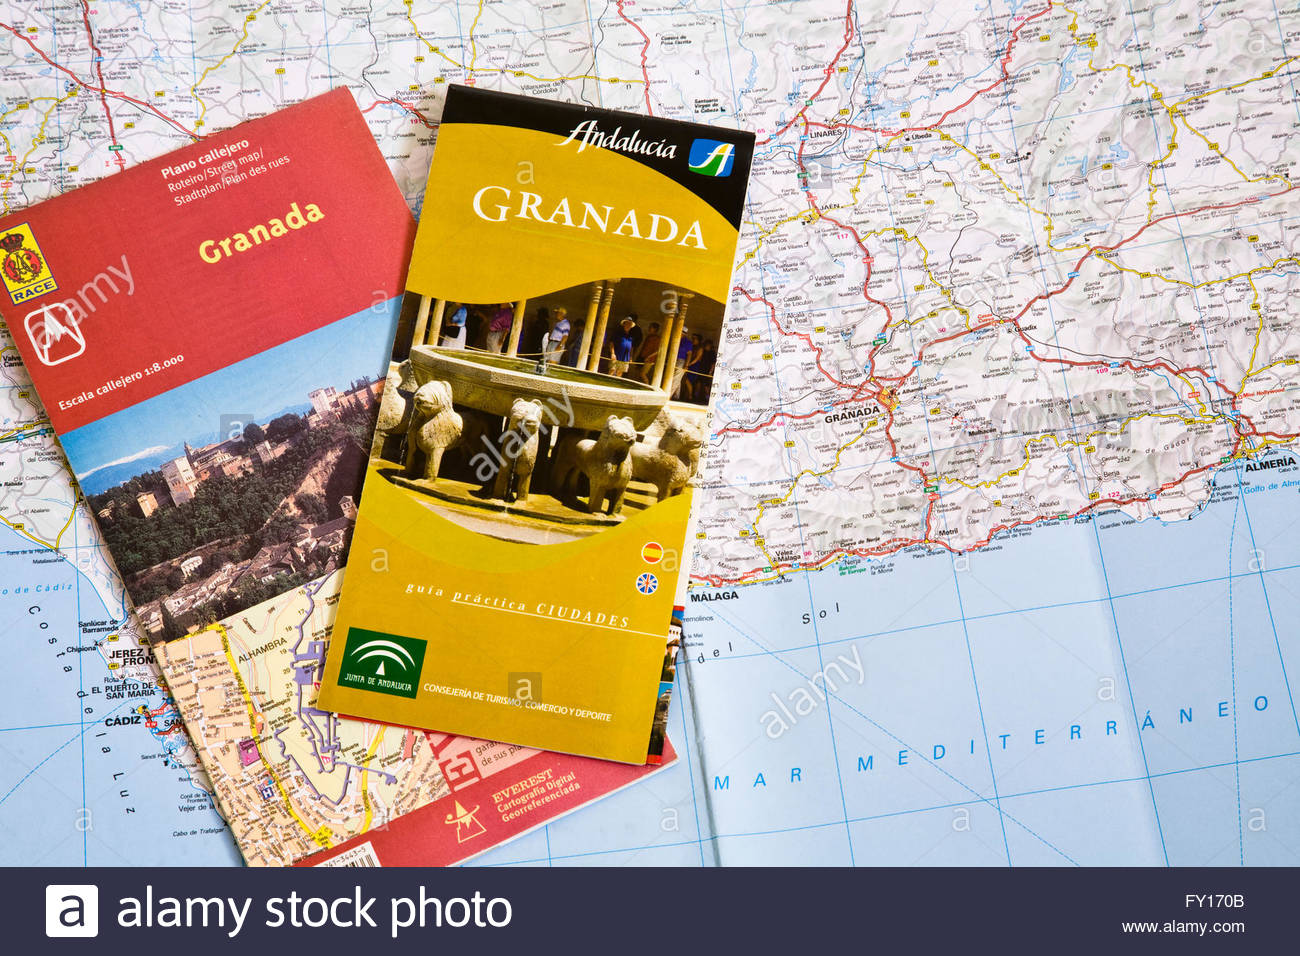 Travel Map Of Spain.Travel Brochures And Map Of Spain Stock Photo 102675003 Alamy